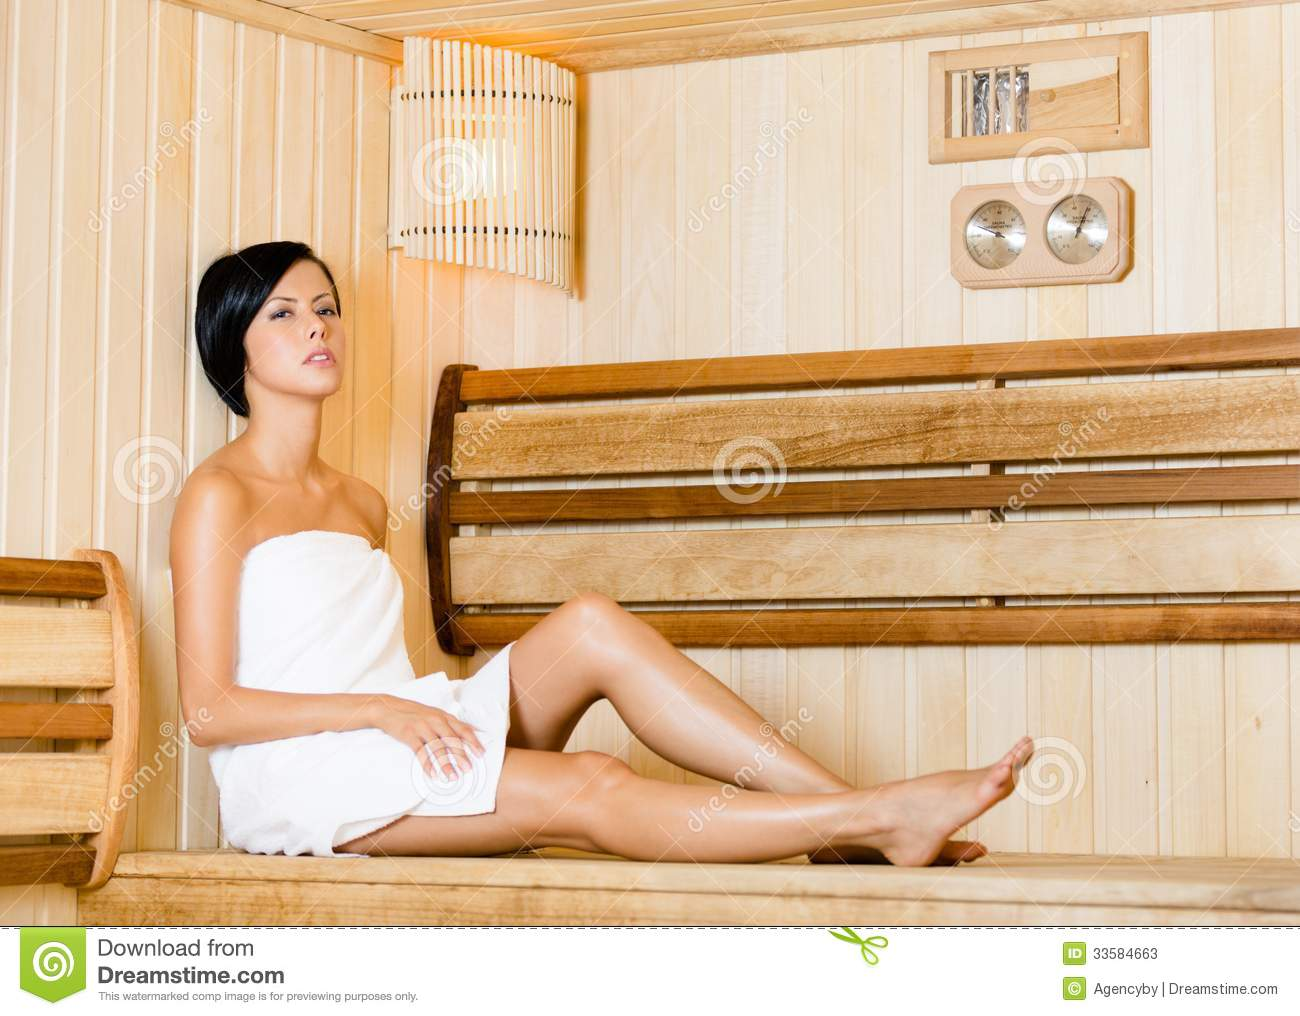 naked women in saunas Half-naked woman relaxing in sauna